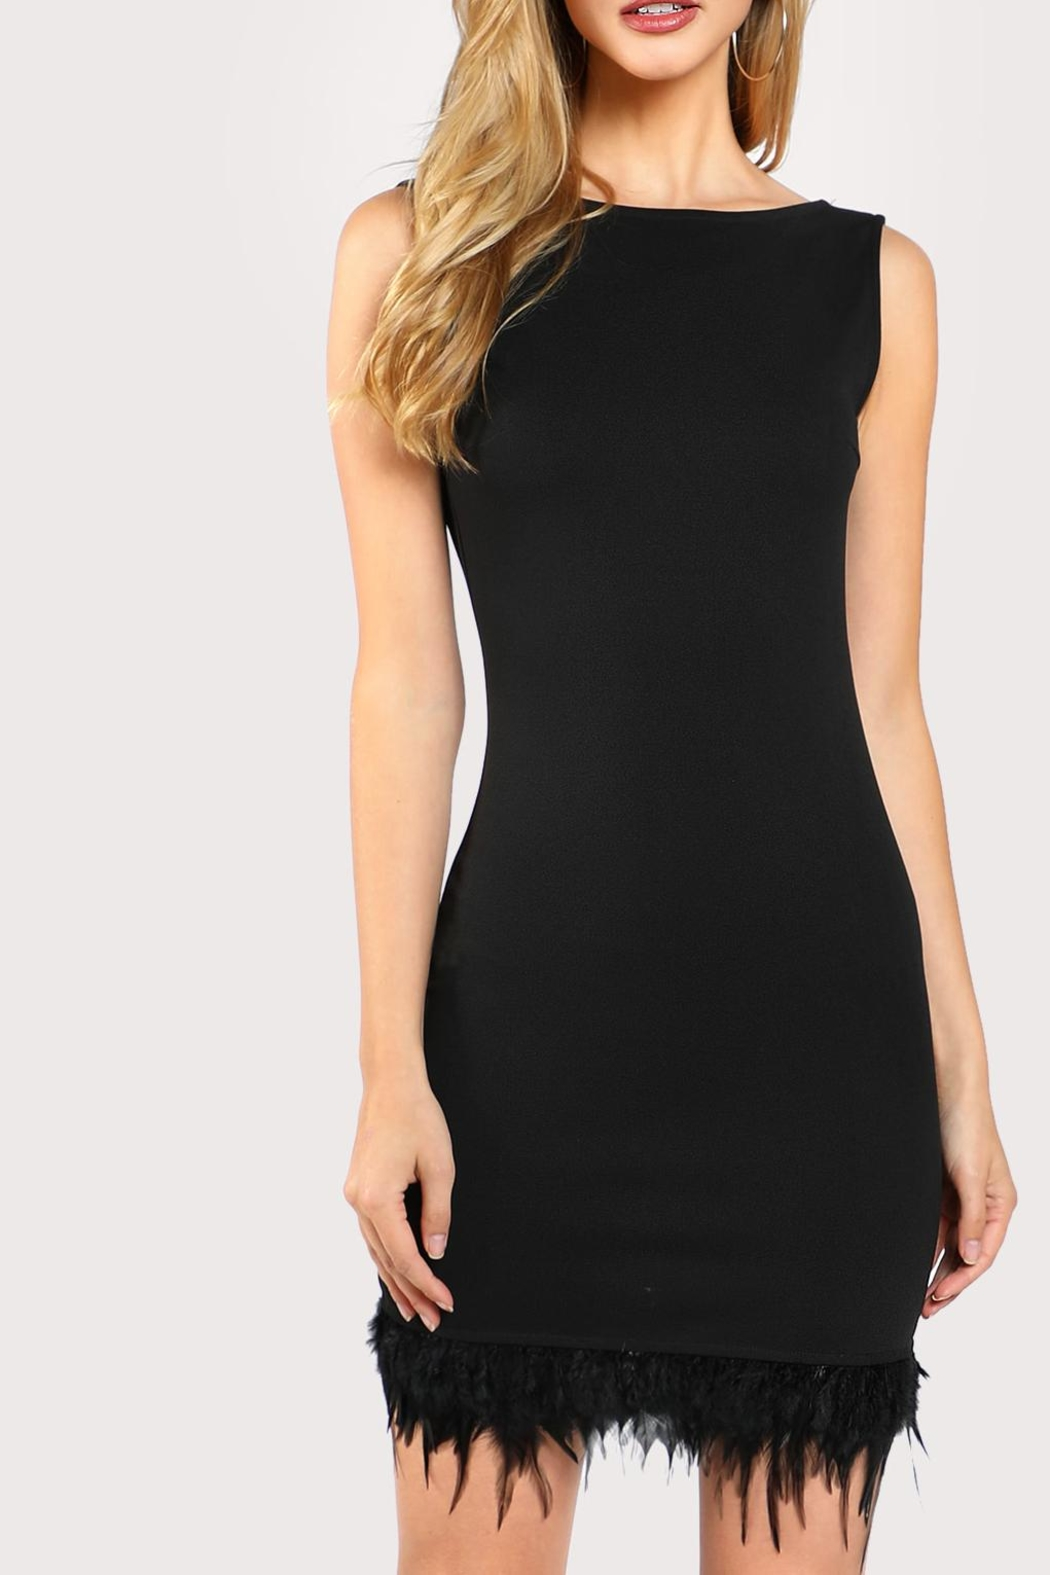 House of Atelier Feather-Trim Cocktail Dress from Montclair by ...